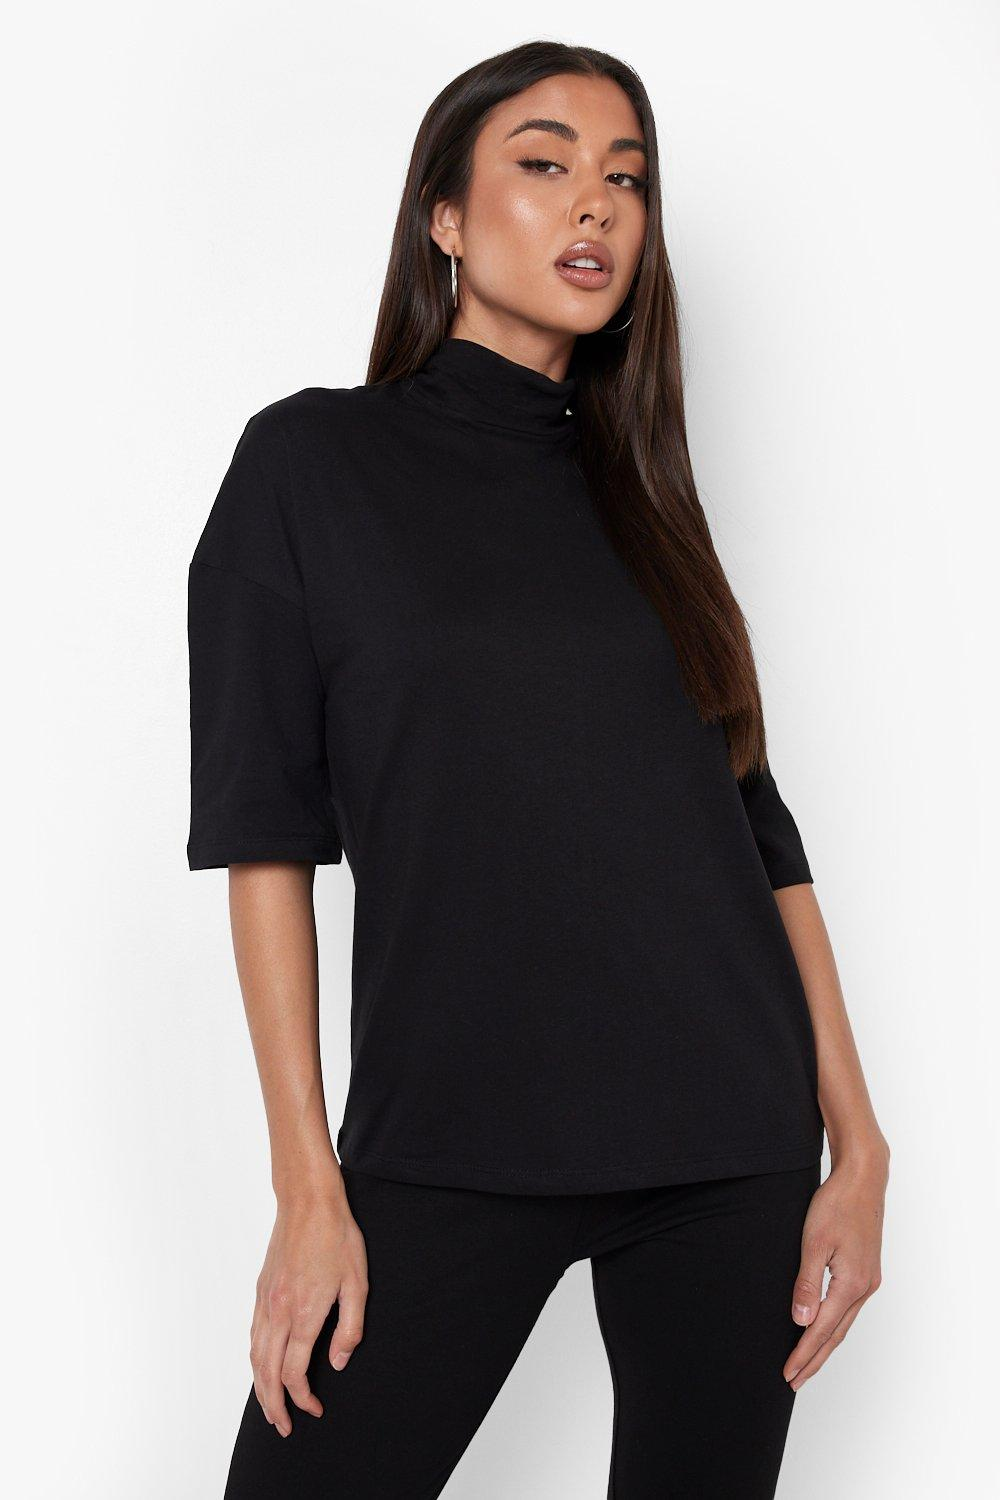 03c9a0d2 Womens Black Basic Oversized High Neck 3/4 Sleeve T-Shirt. Hover to zoom